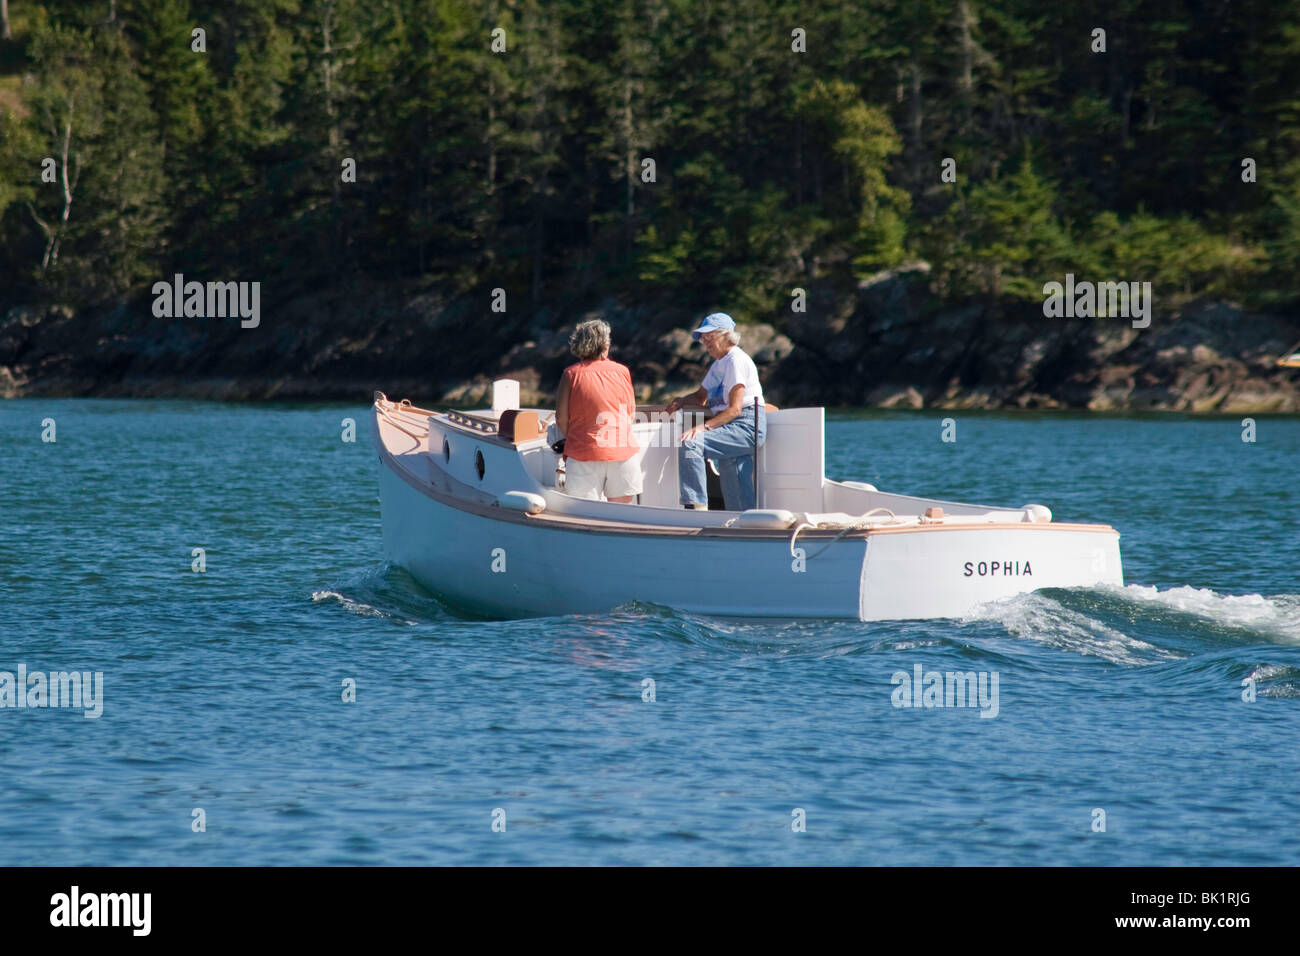 The Motor Launch SOPHIA out for a harbor tour on a fine day in the Fox Island Thorofare, Maine - Stock Image